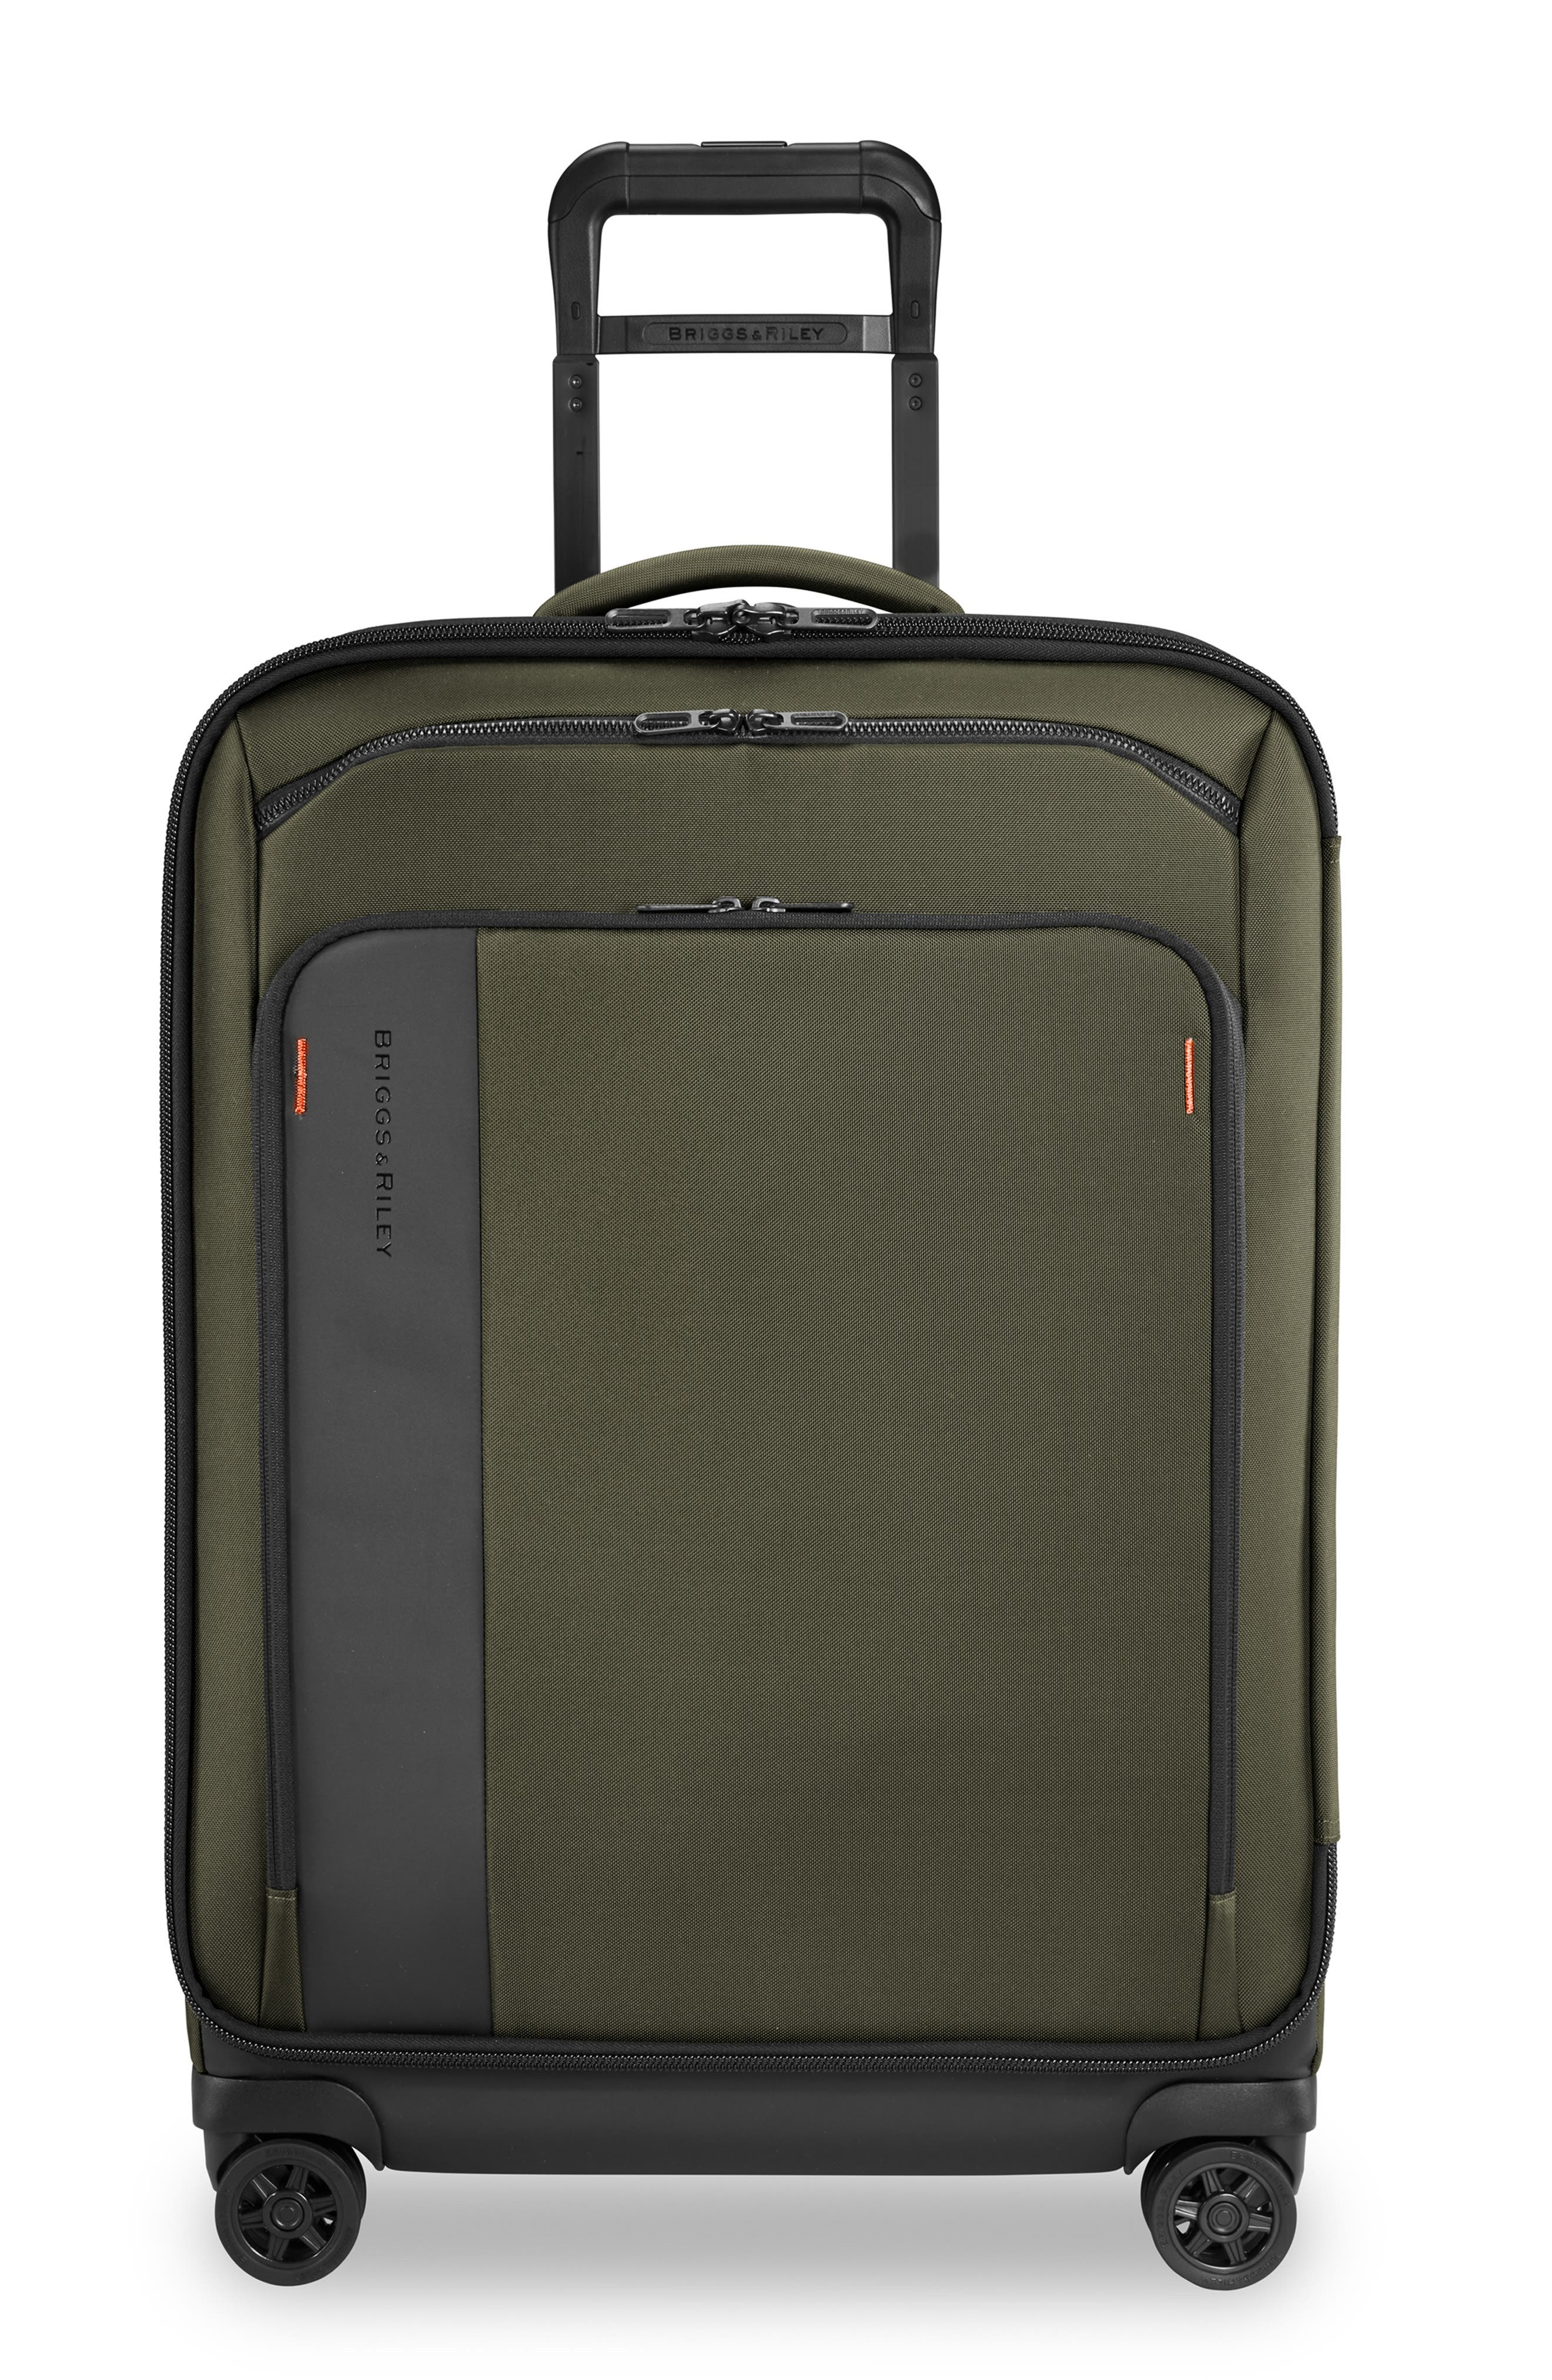 Zdx 26-Inch Expandable Spinner Suitcase